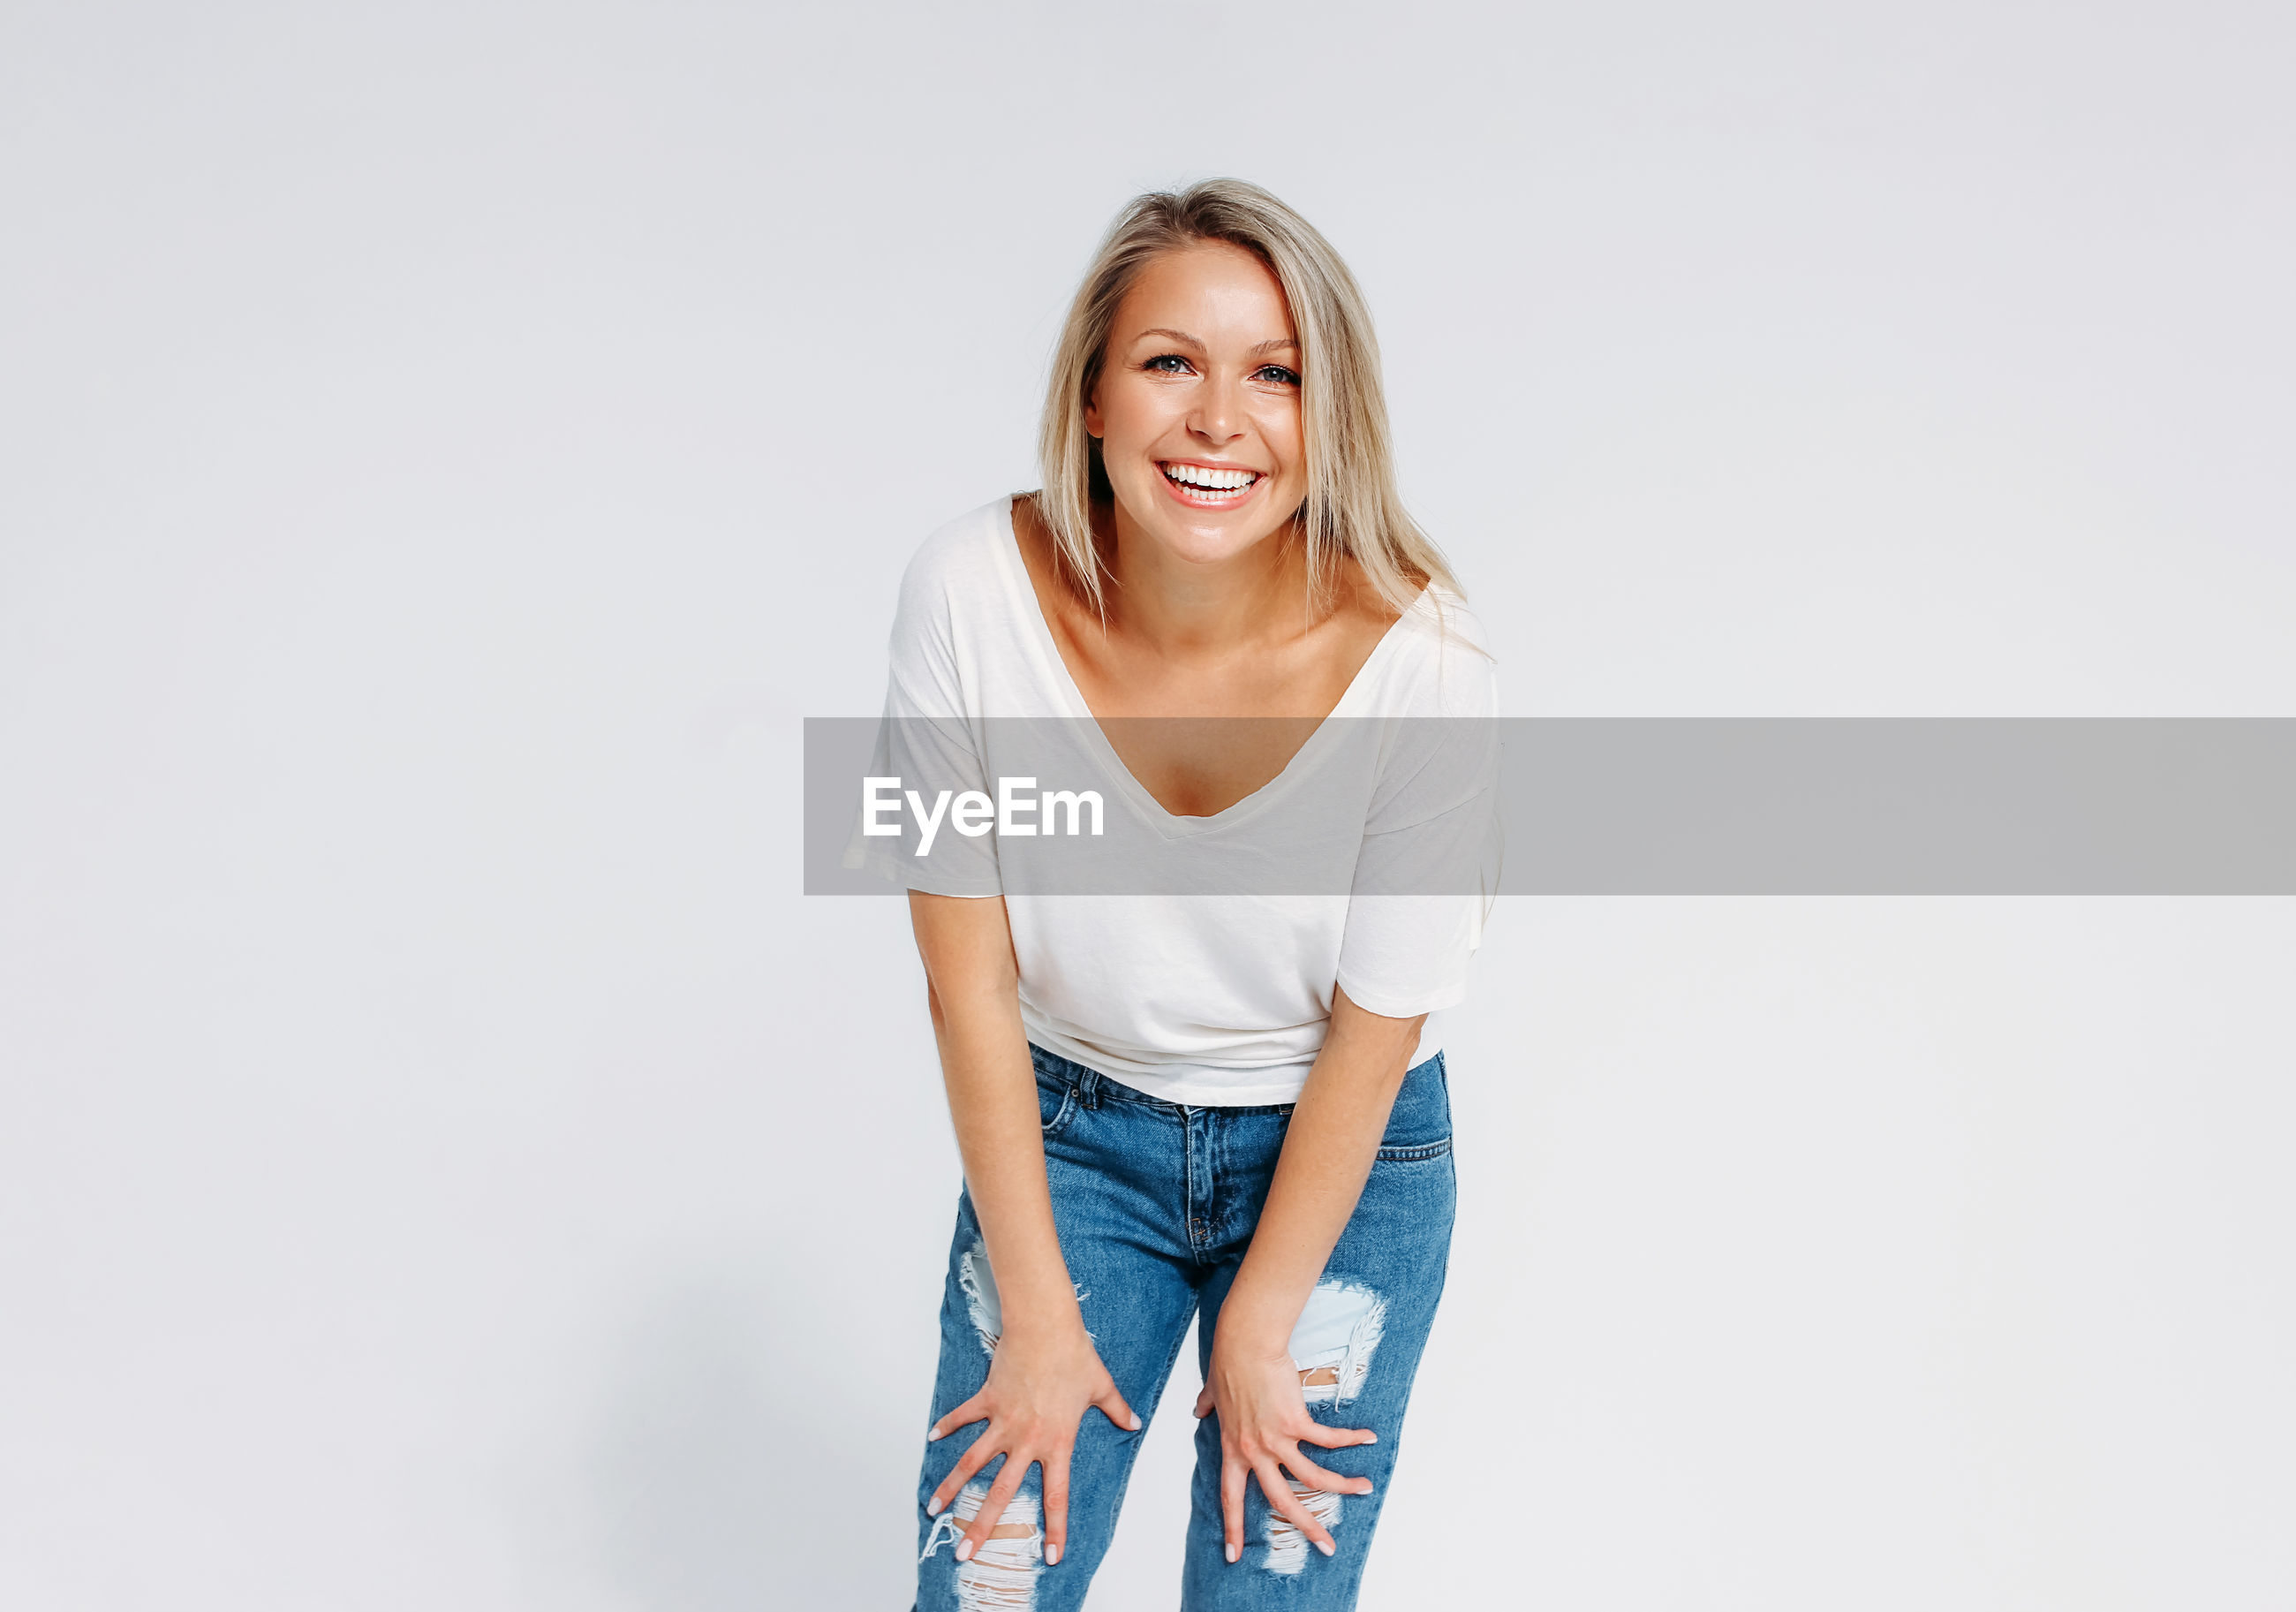 PORTRAIT OF HAPPY YOUNG WOMAN AGAINST WHITE BACKGROUND